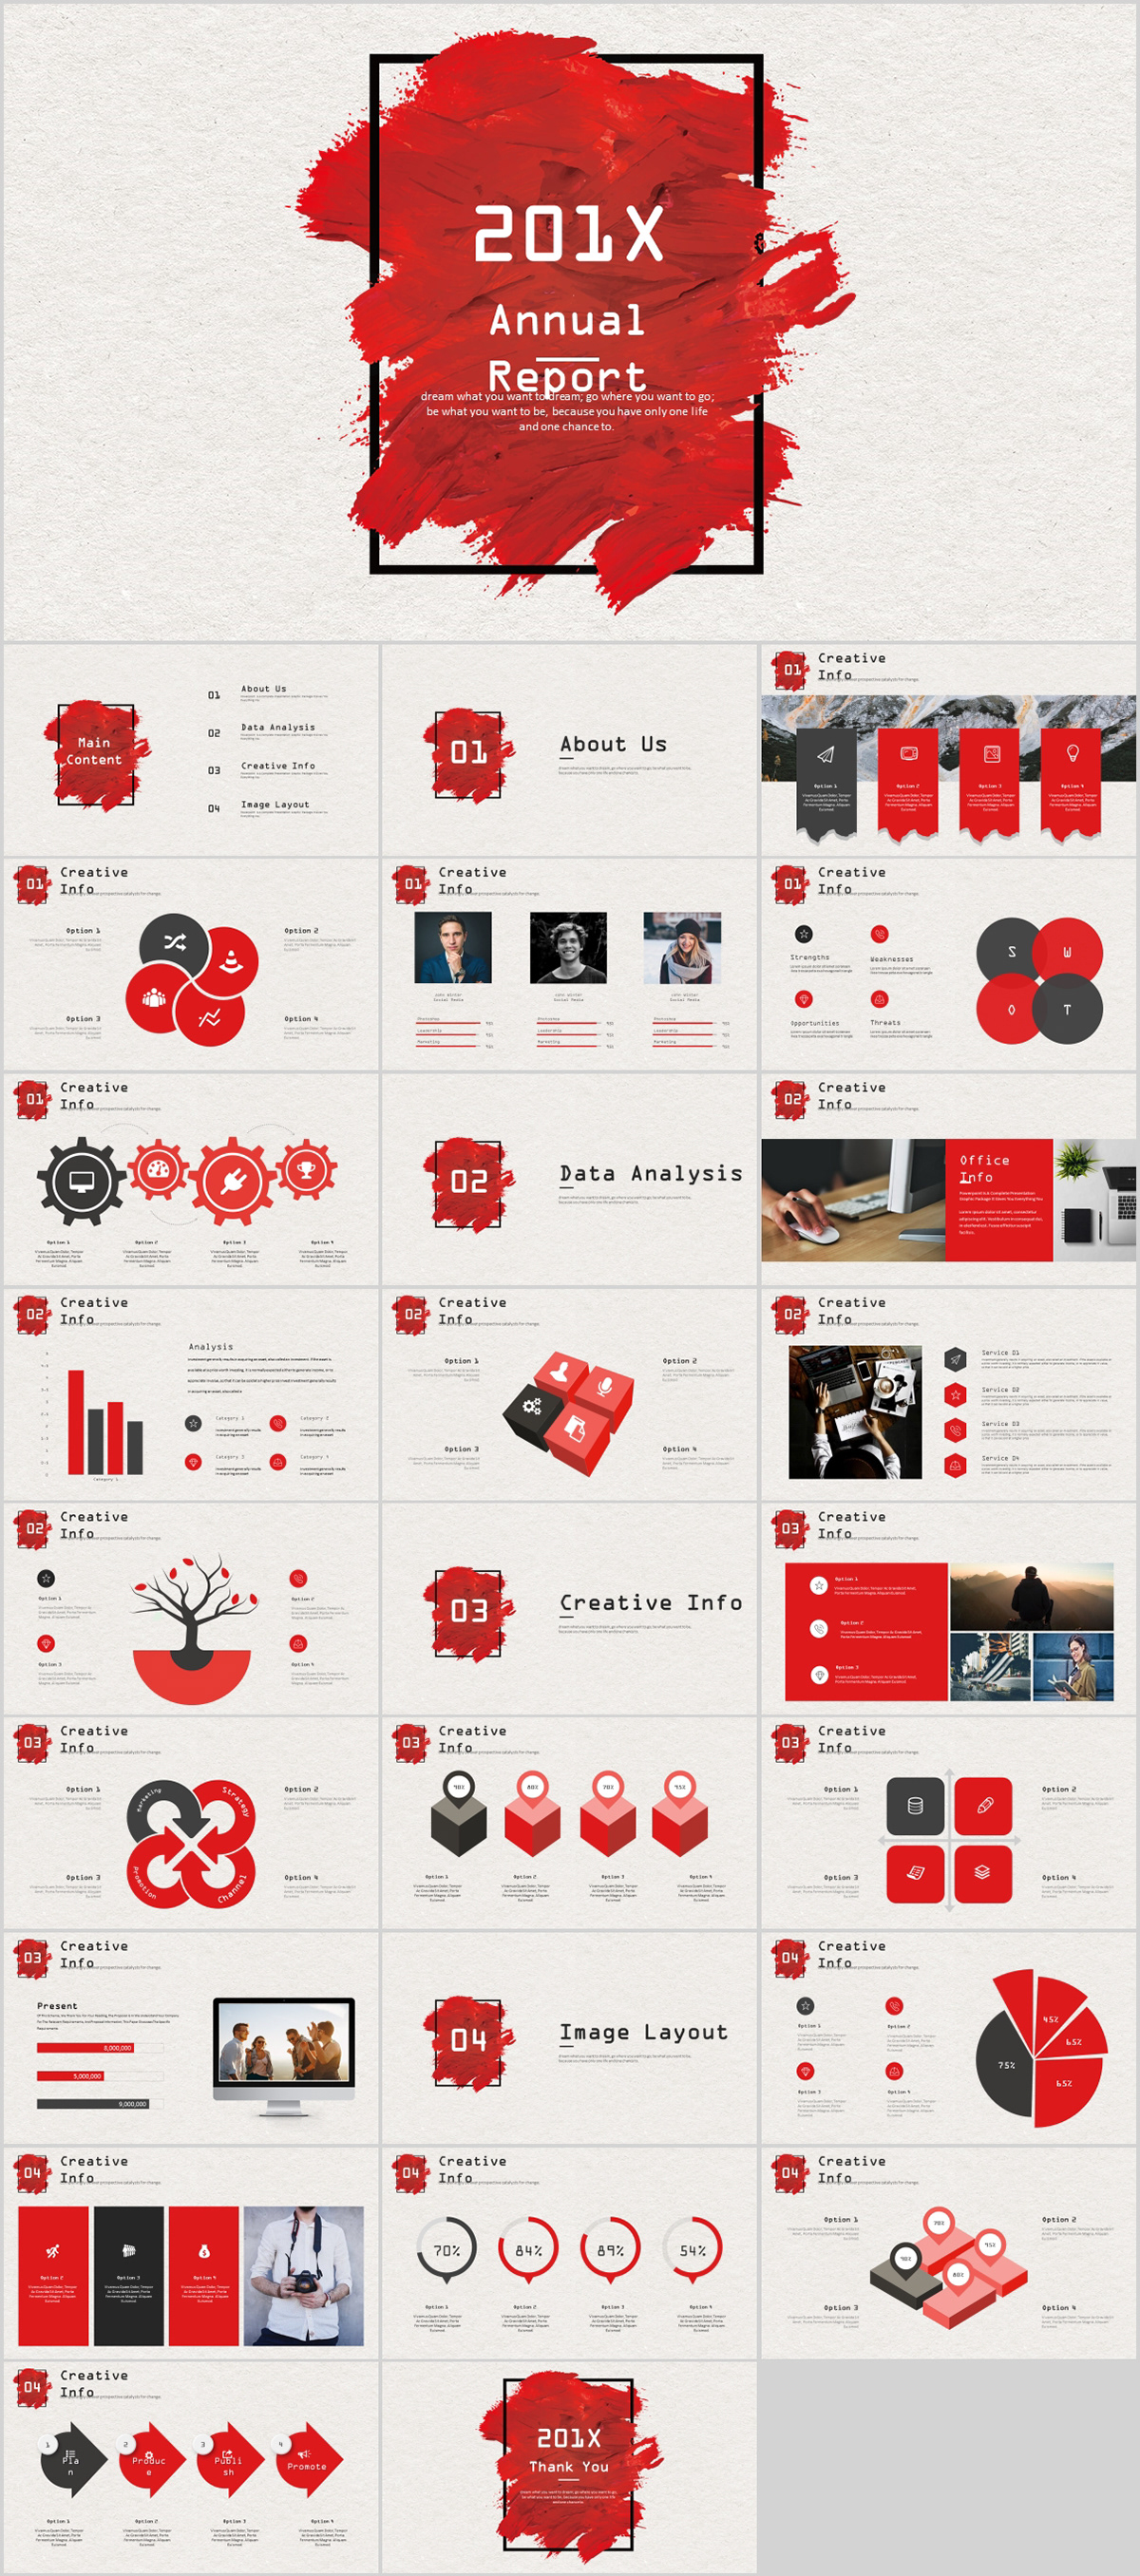 red company annual report powerpoint template on behance. Black Bedroom Furniture Sets. Home Design Ideas